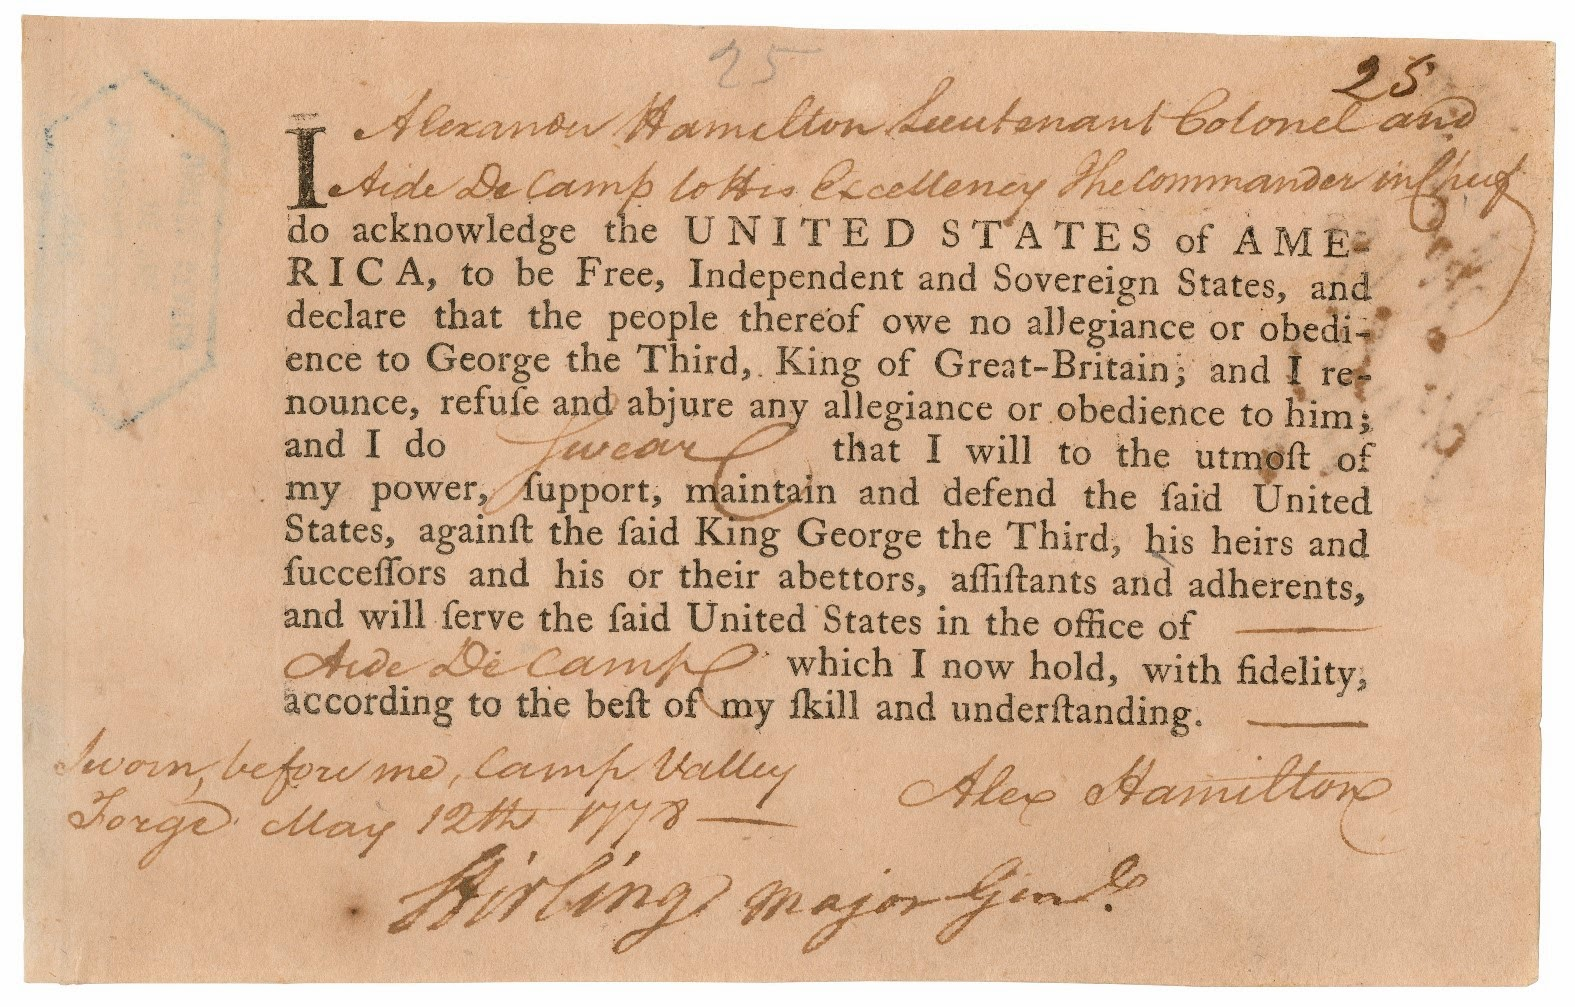 alexander hamilton alexander hamilton s oath of allegiance dated 12 1778 as aide de camp to commander in chief george washington from the war department collection of